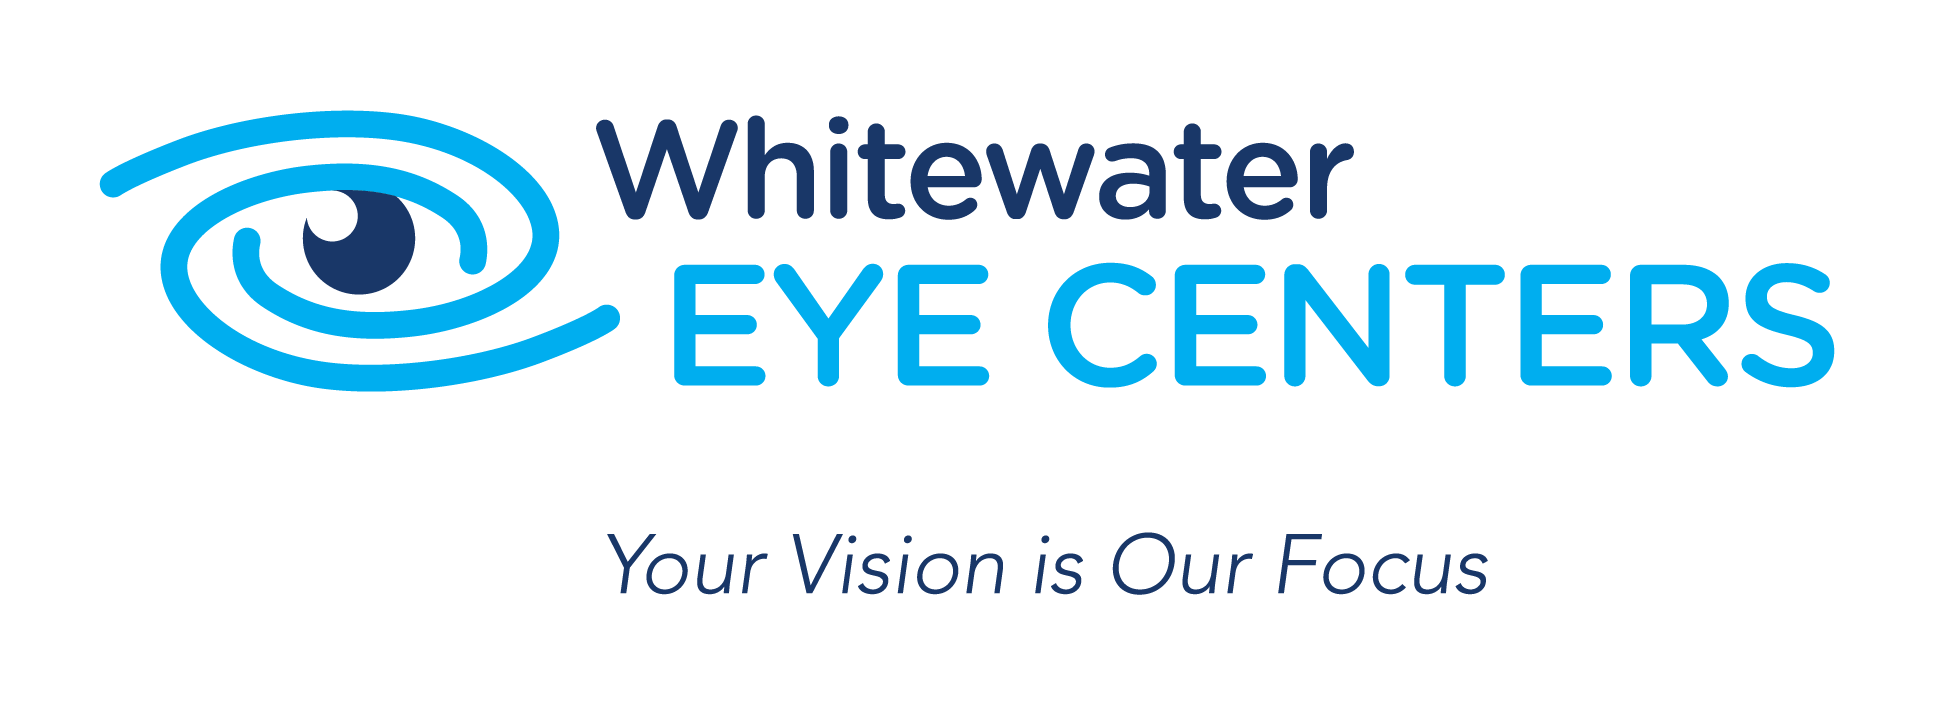 Whitewater Eye Centers, LLC